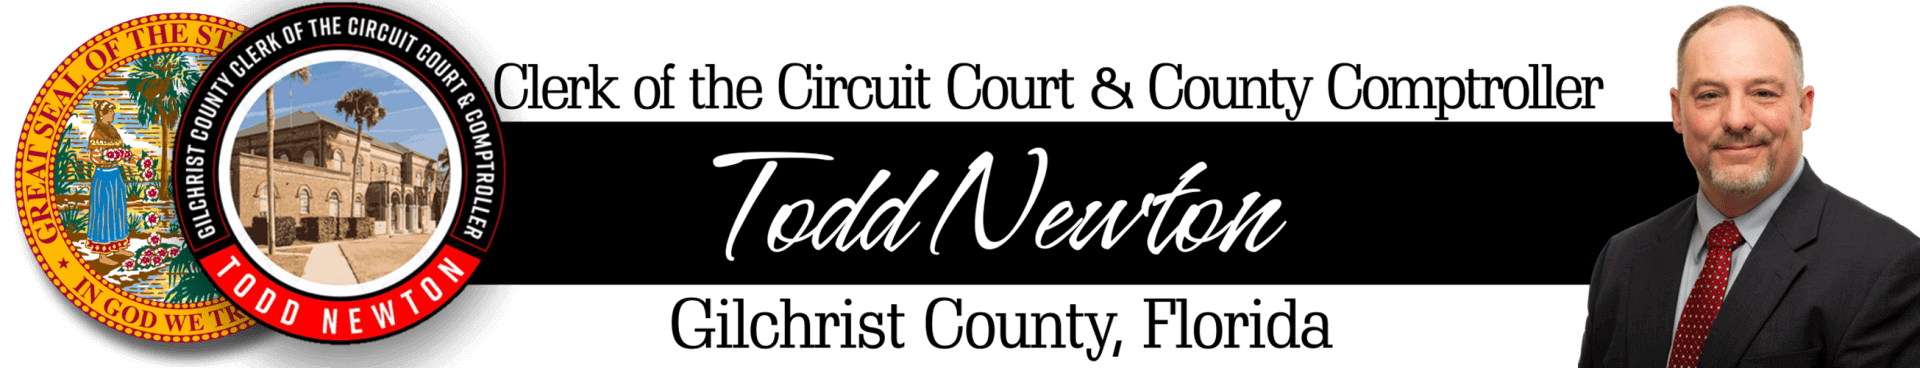 Gilchrist County Clerk of the Circuit Court & Comptroller